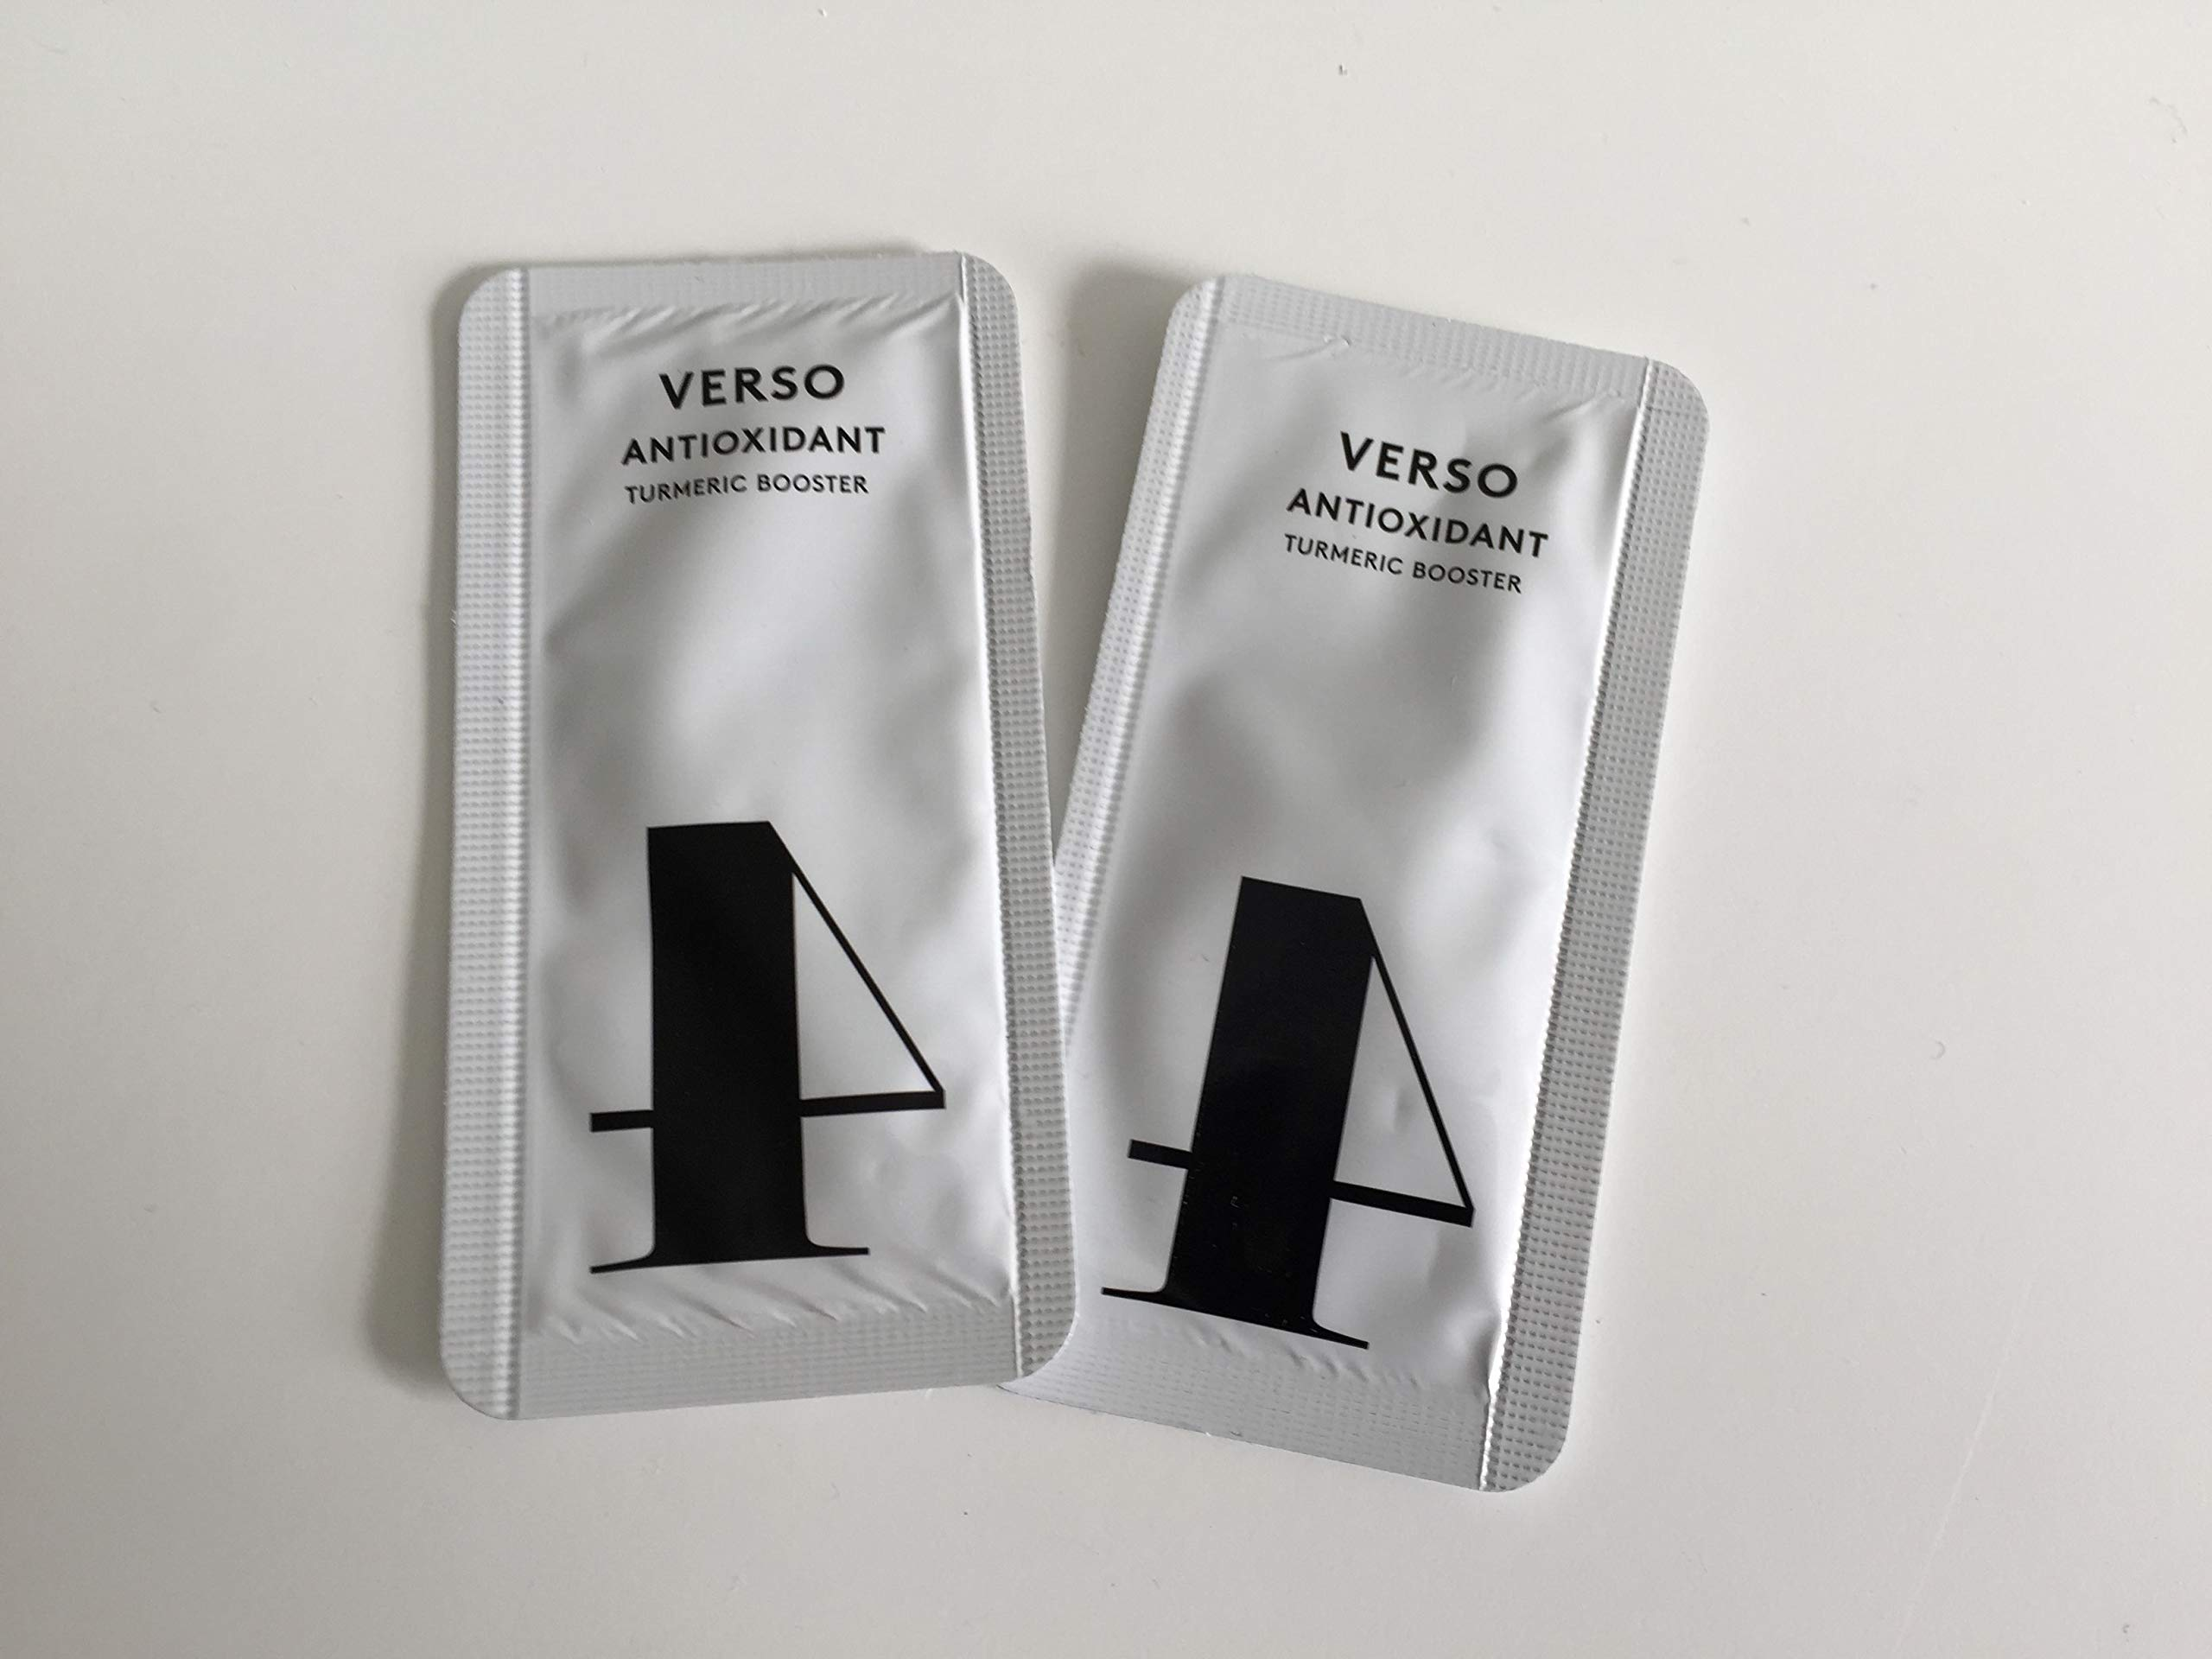 VERSO Antioxidant Turmeric Booster, Set of 2 Travel Packets by Verso (Image #1)